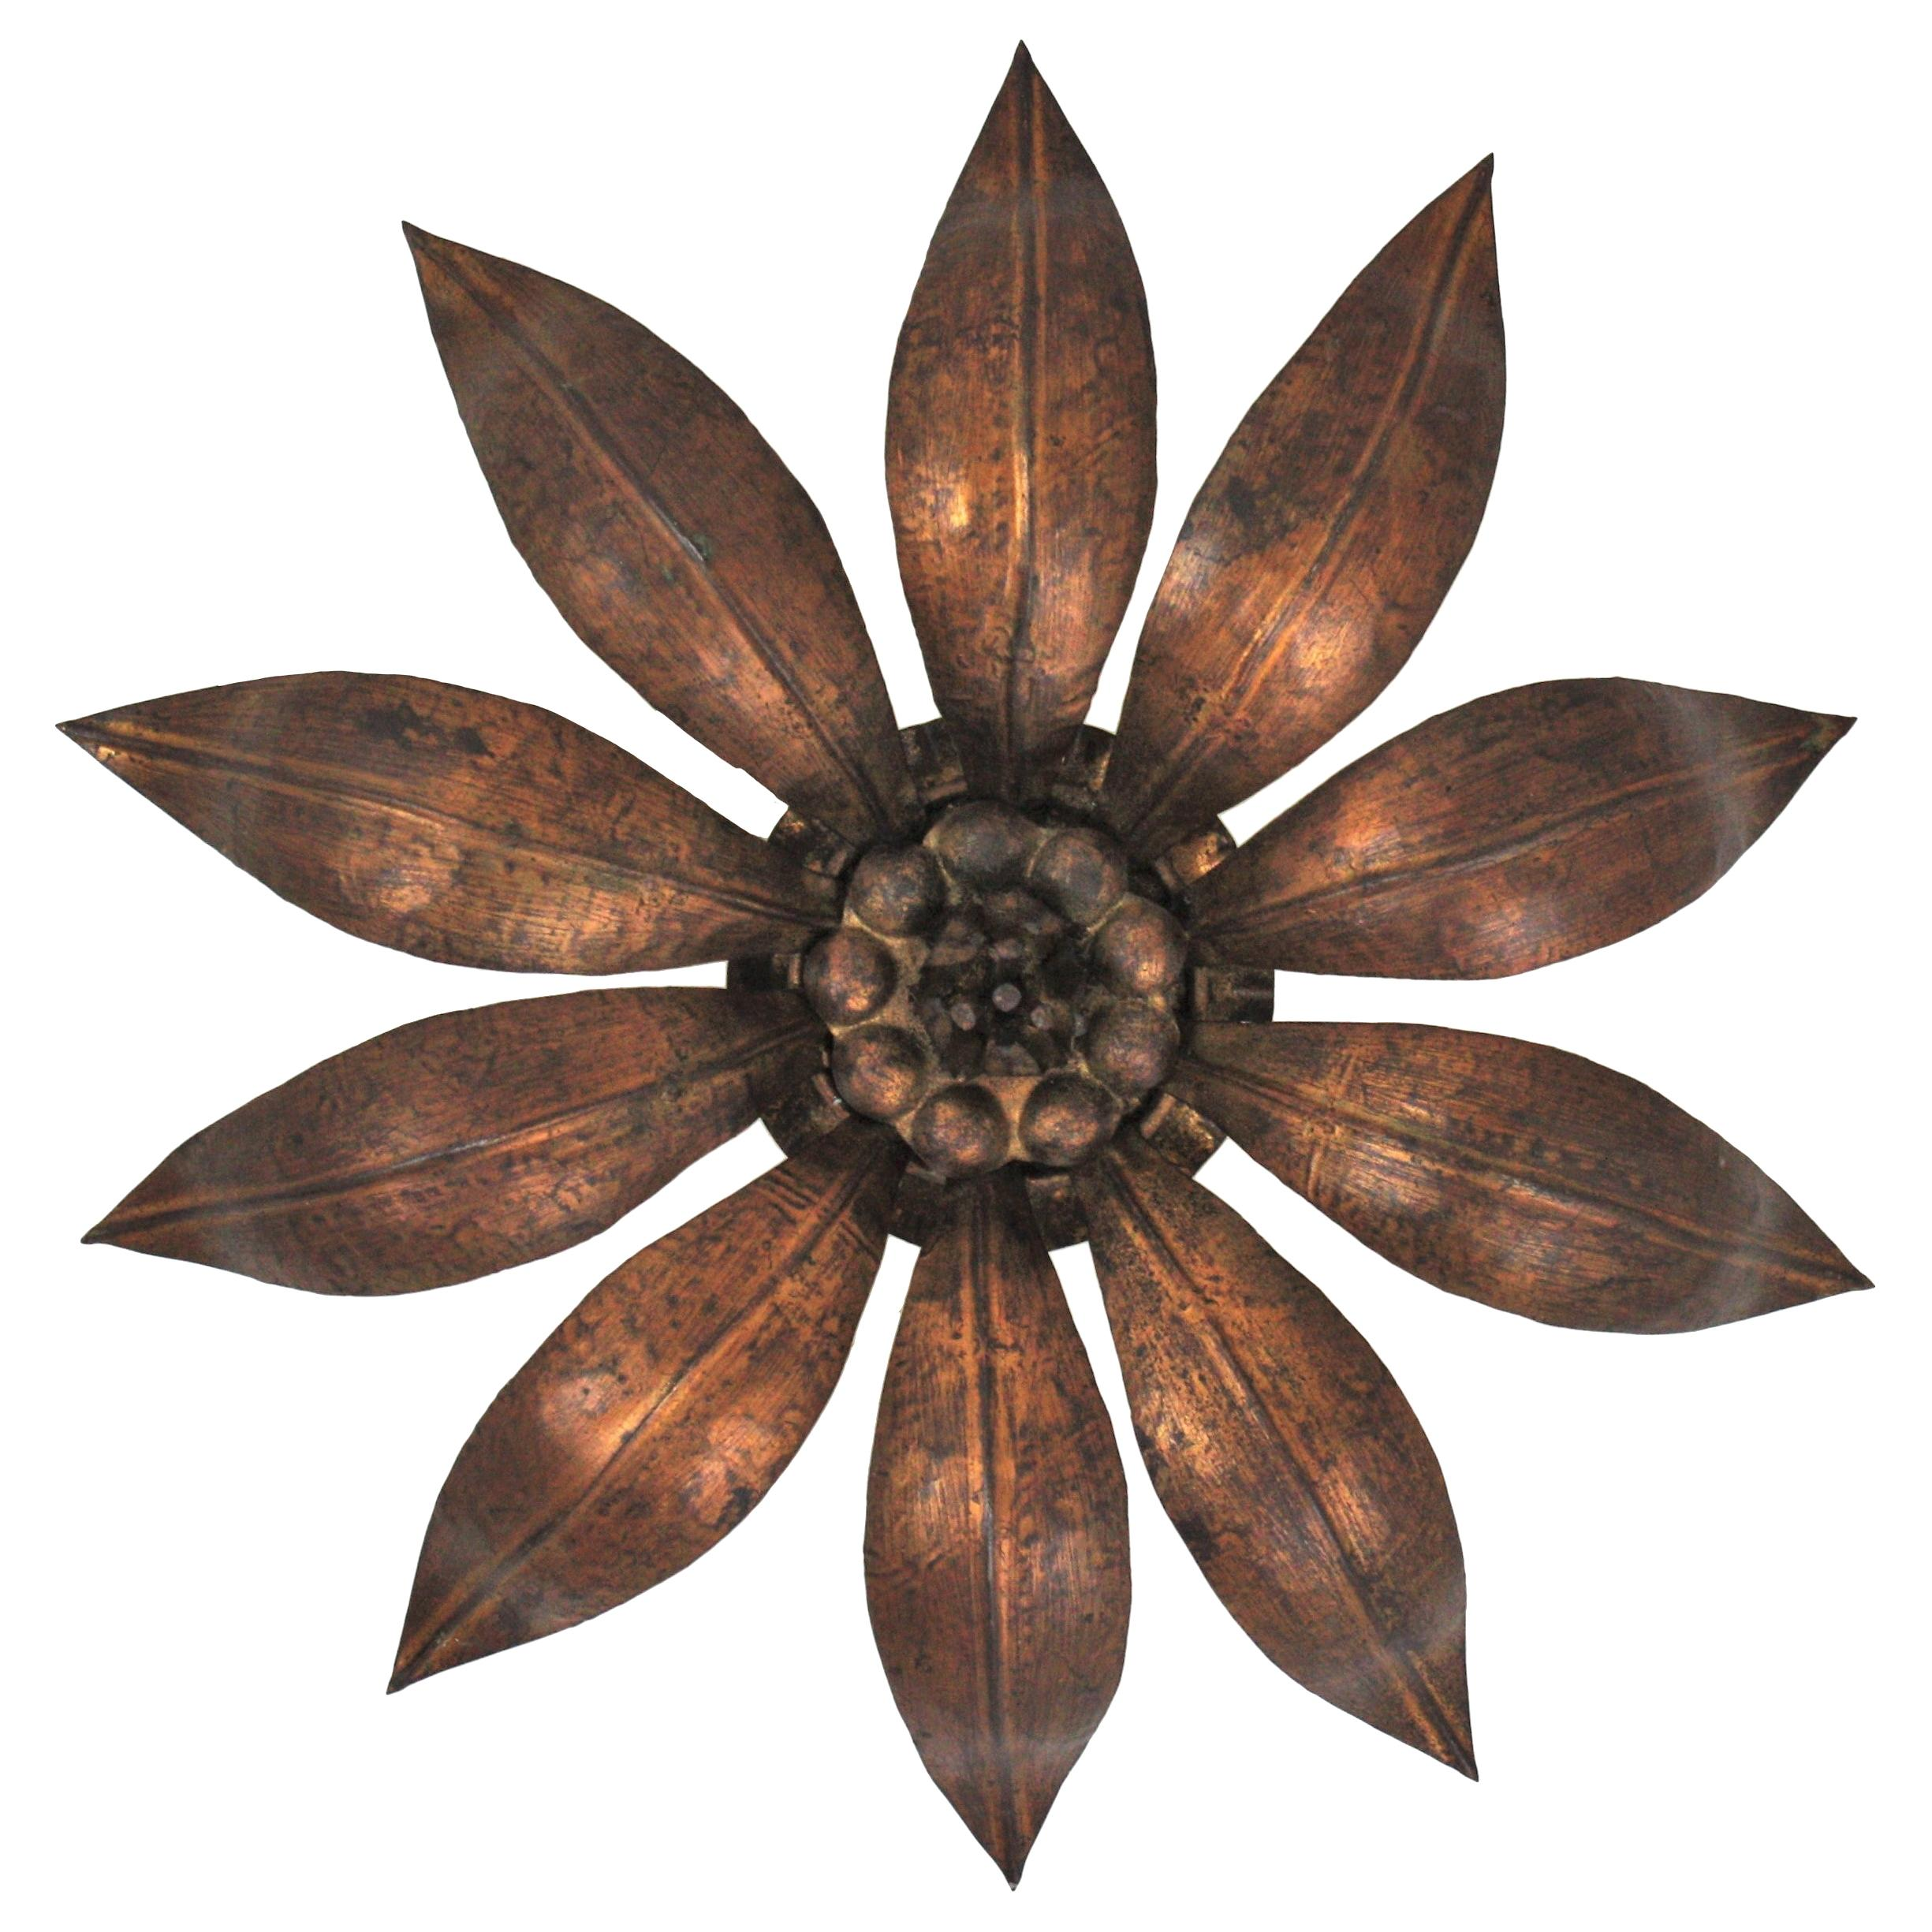 French Sunburst Flower Ceiling Light Fixture in Bronze Gilt Iron, 1940s